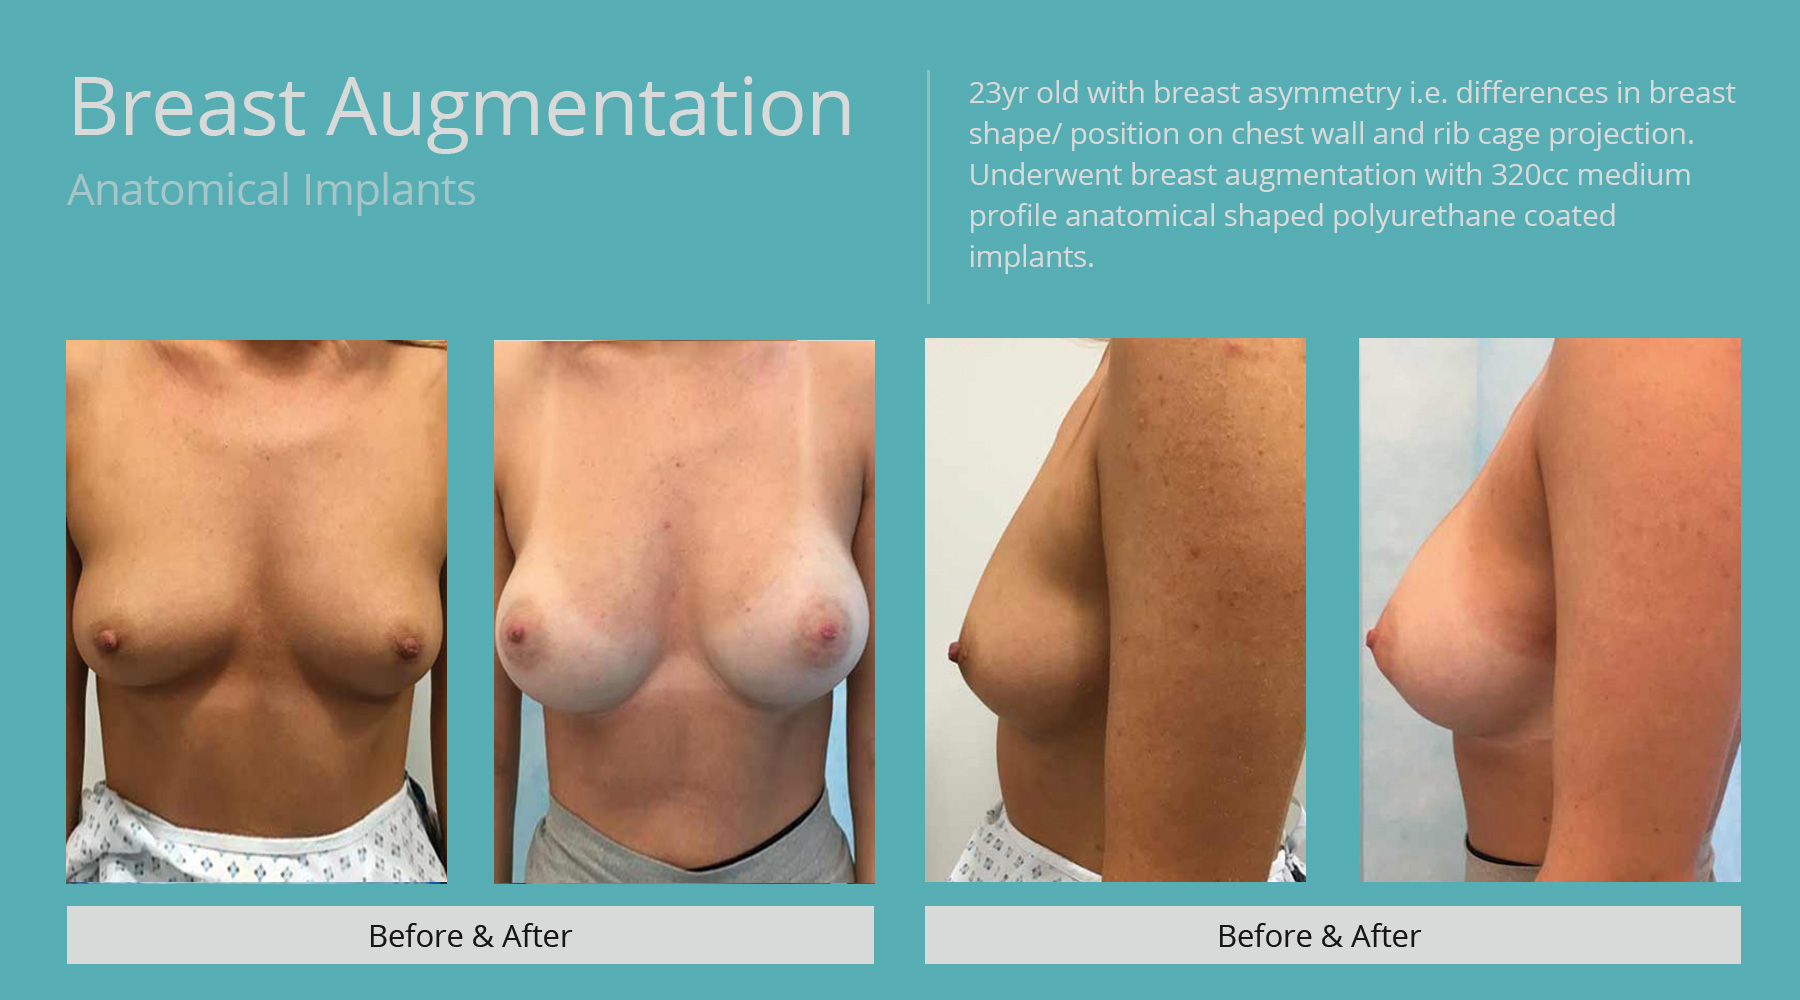 Breast-Augmentation-anatomical-32